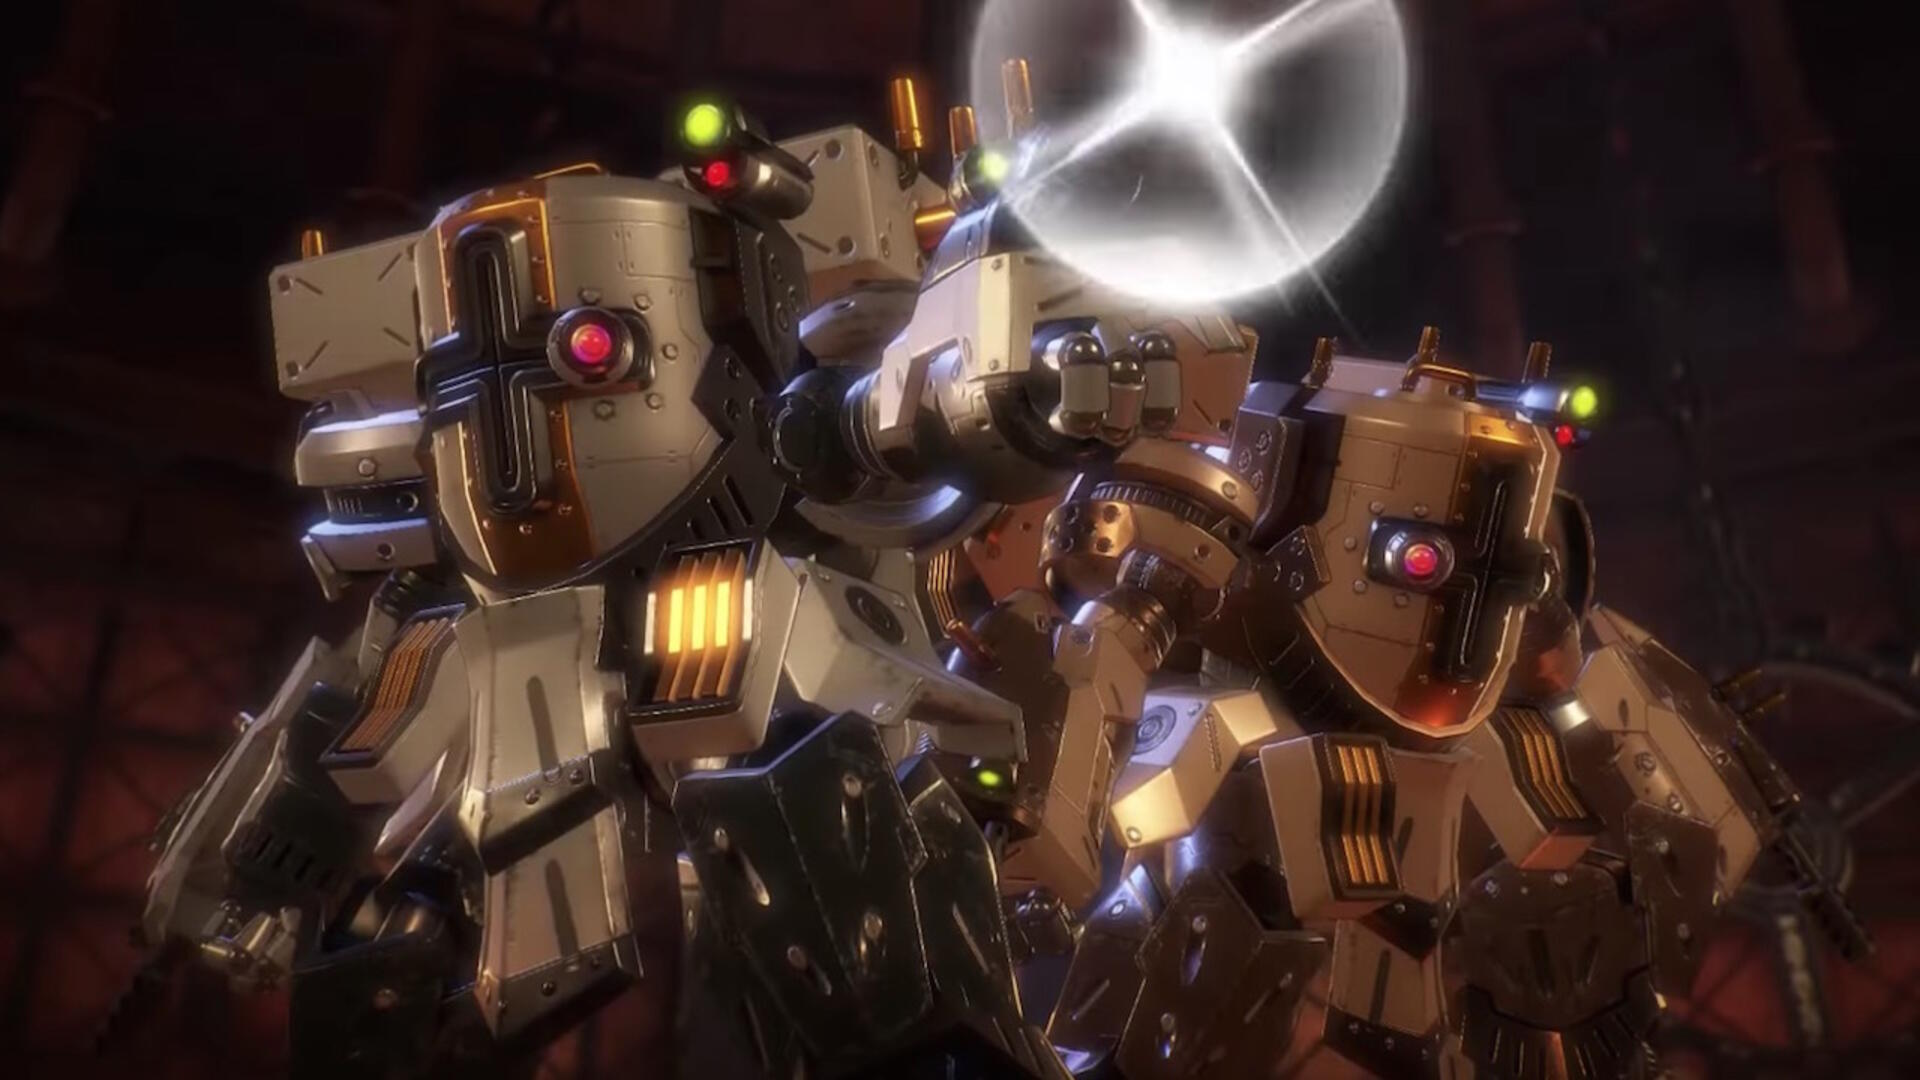 Project Sakura Wars Trailers Show Off New Characters, Mechs, and Gameplay Details